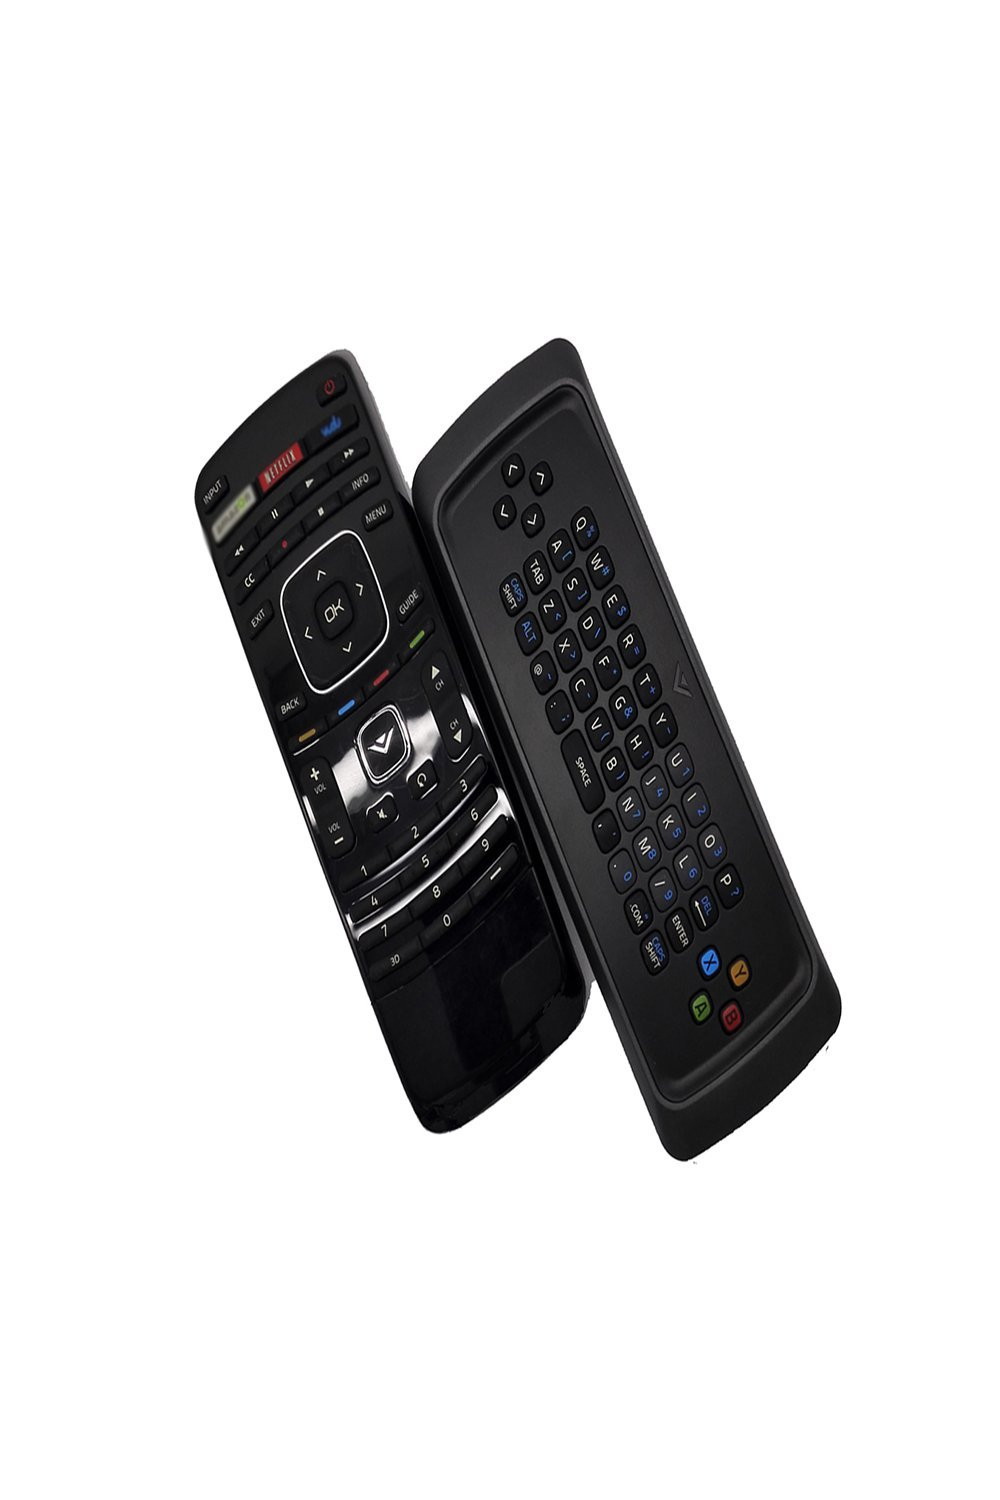 ECONTROLLY New Replaced Dual Side Keyboard QWERTY Remote XRT301 XRV13D for Vizio 3D TV with NETFLIX and More Apps Buttons